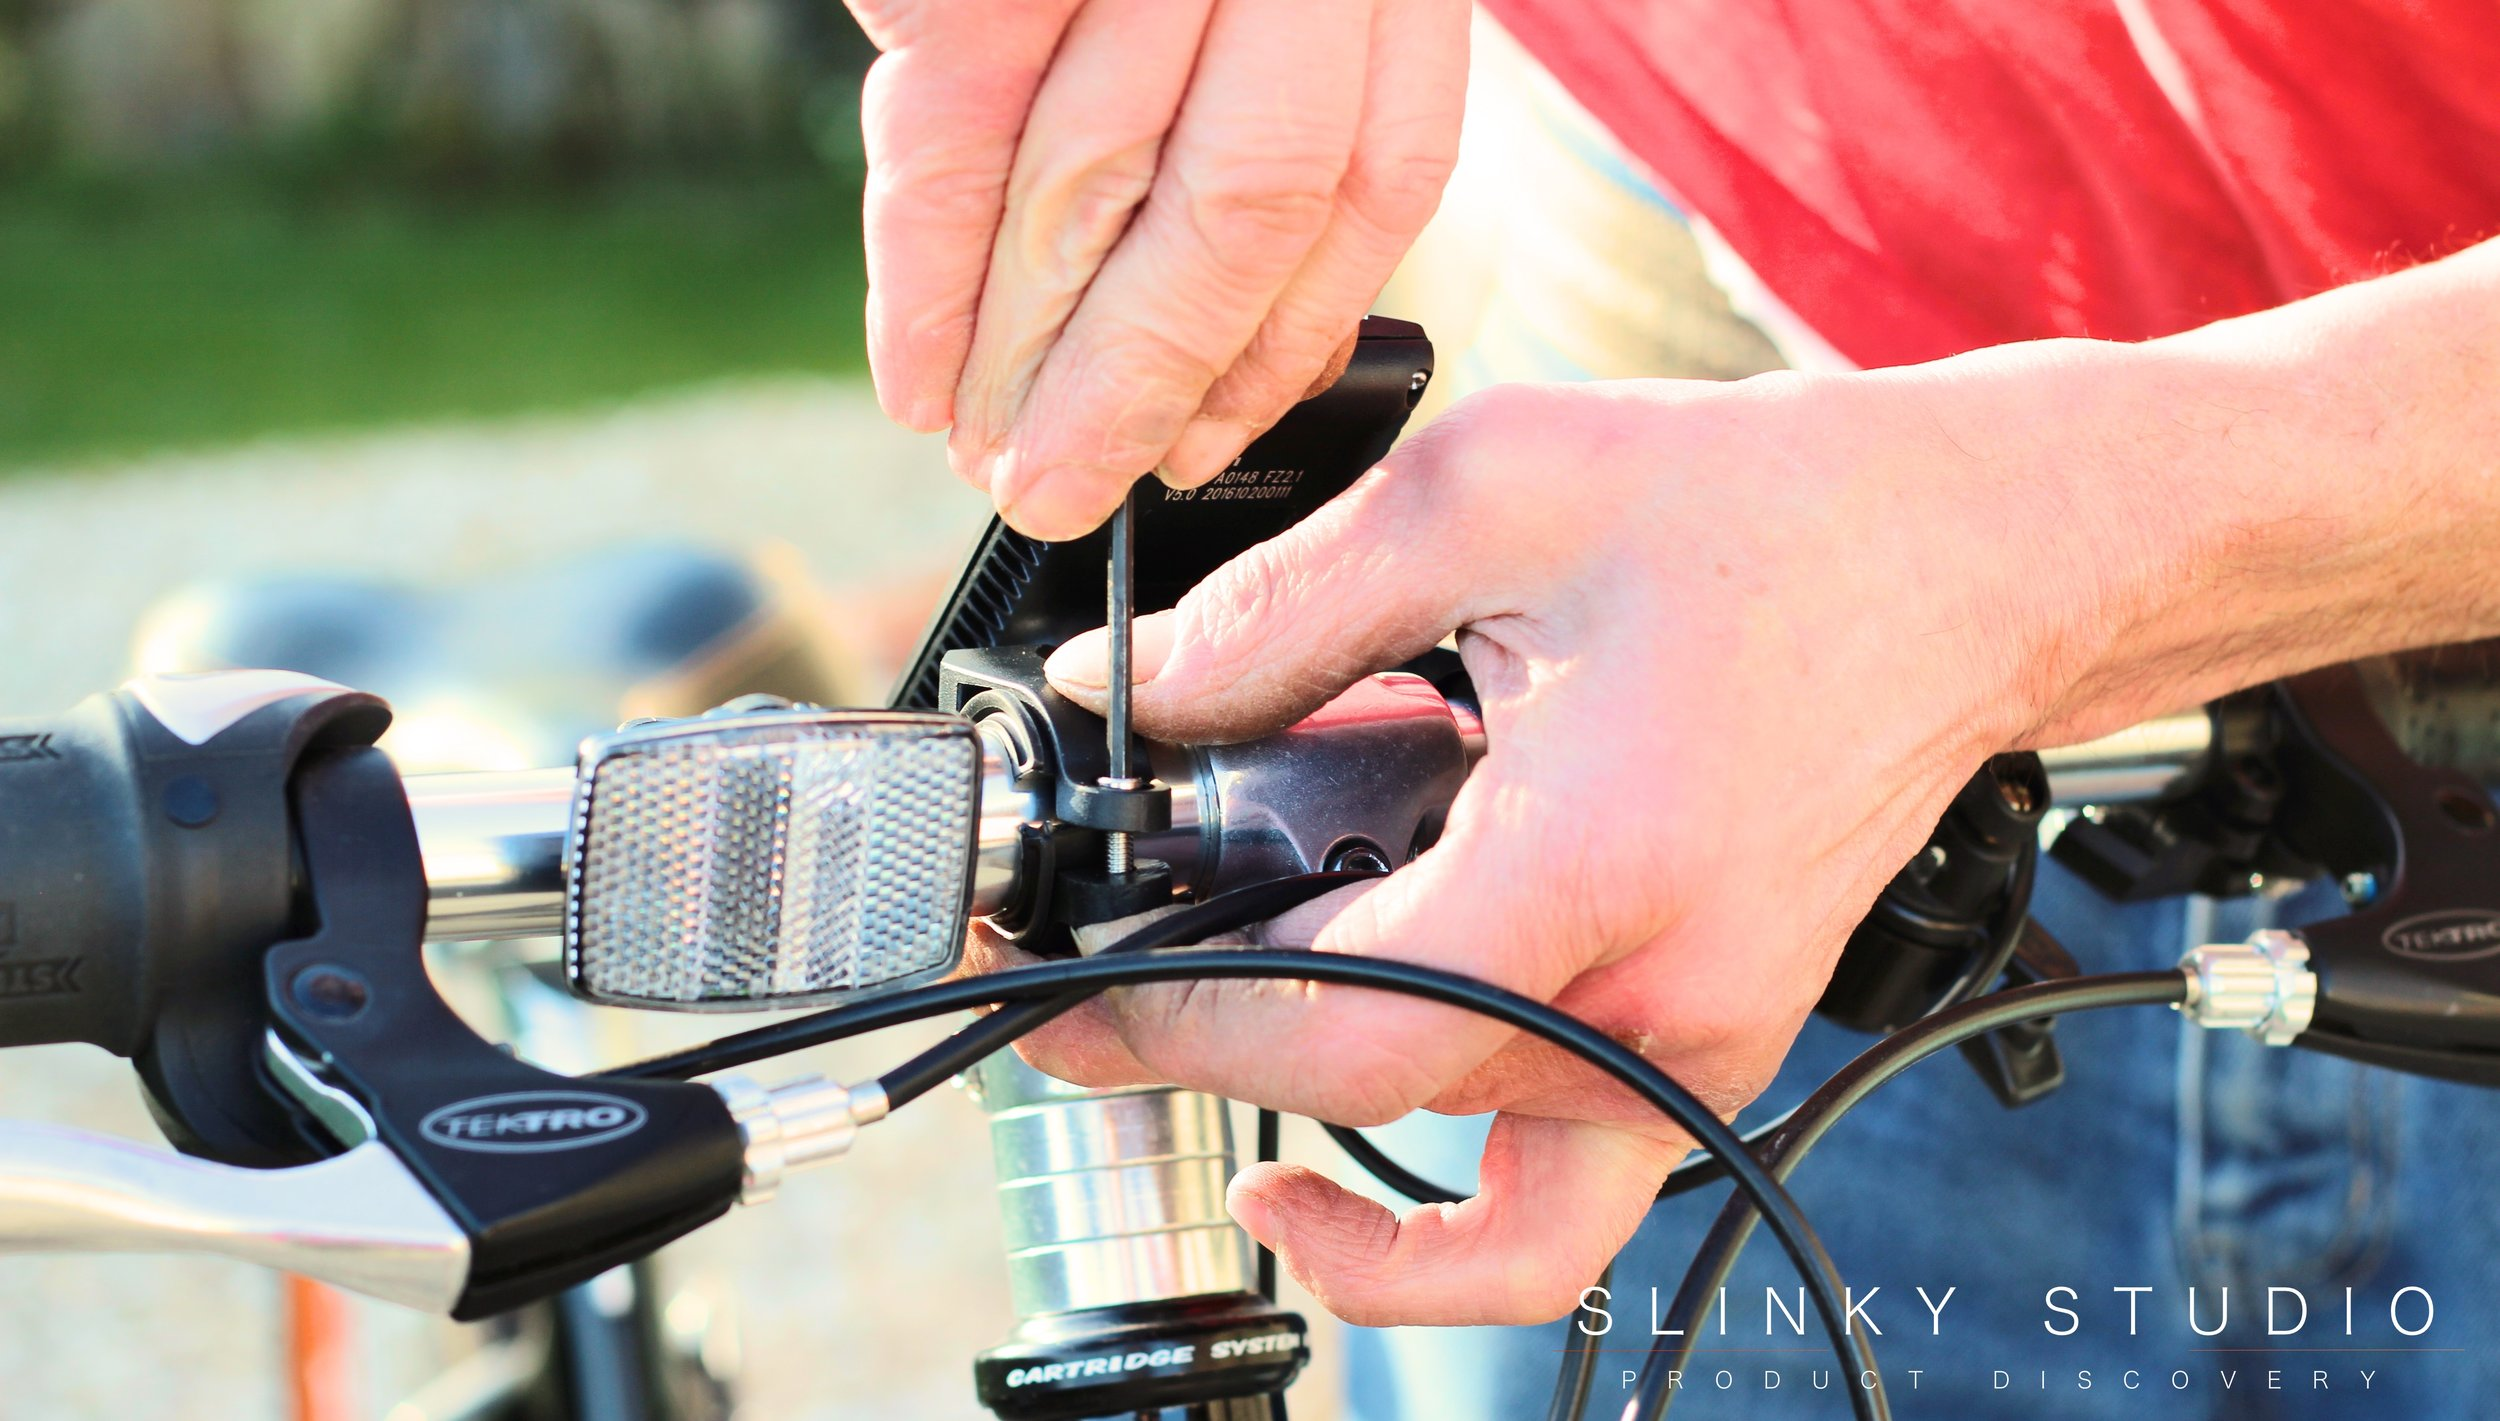 Dillenger eBike Street Legal Conversion Kit Screwing on LED Display.jpg